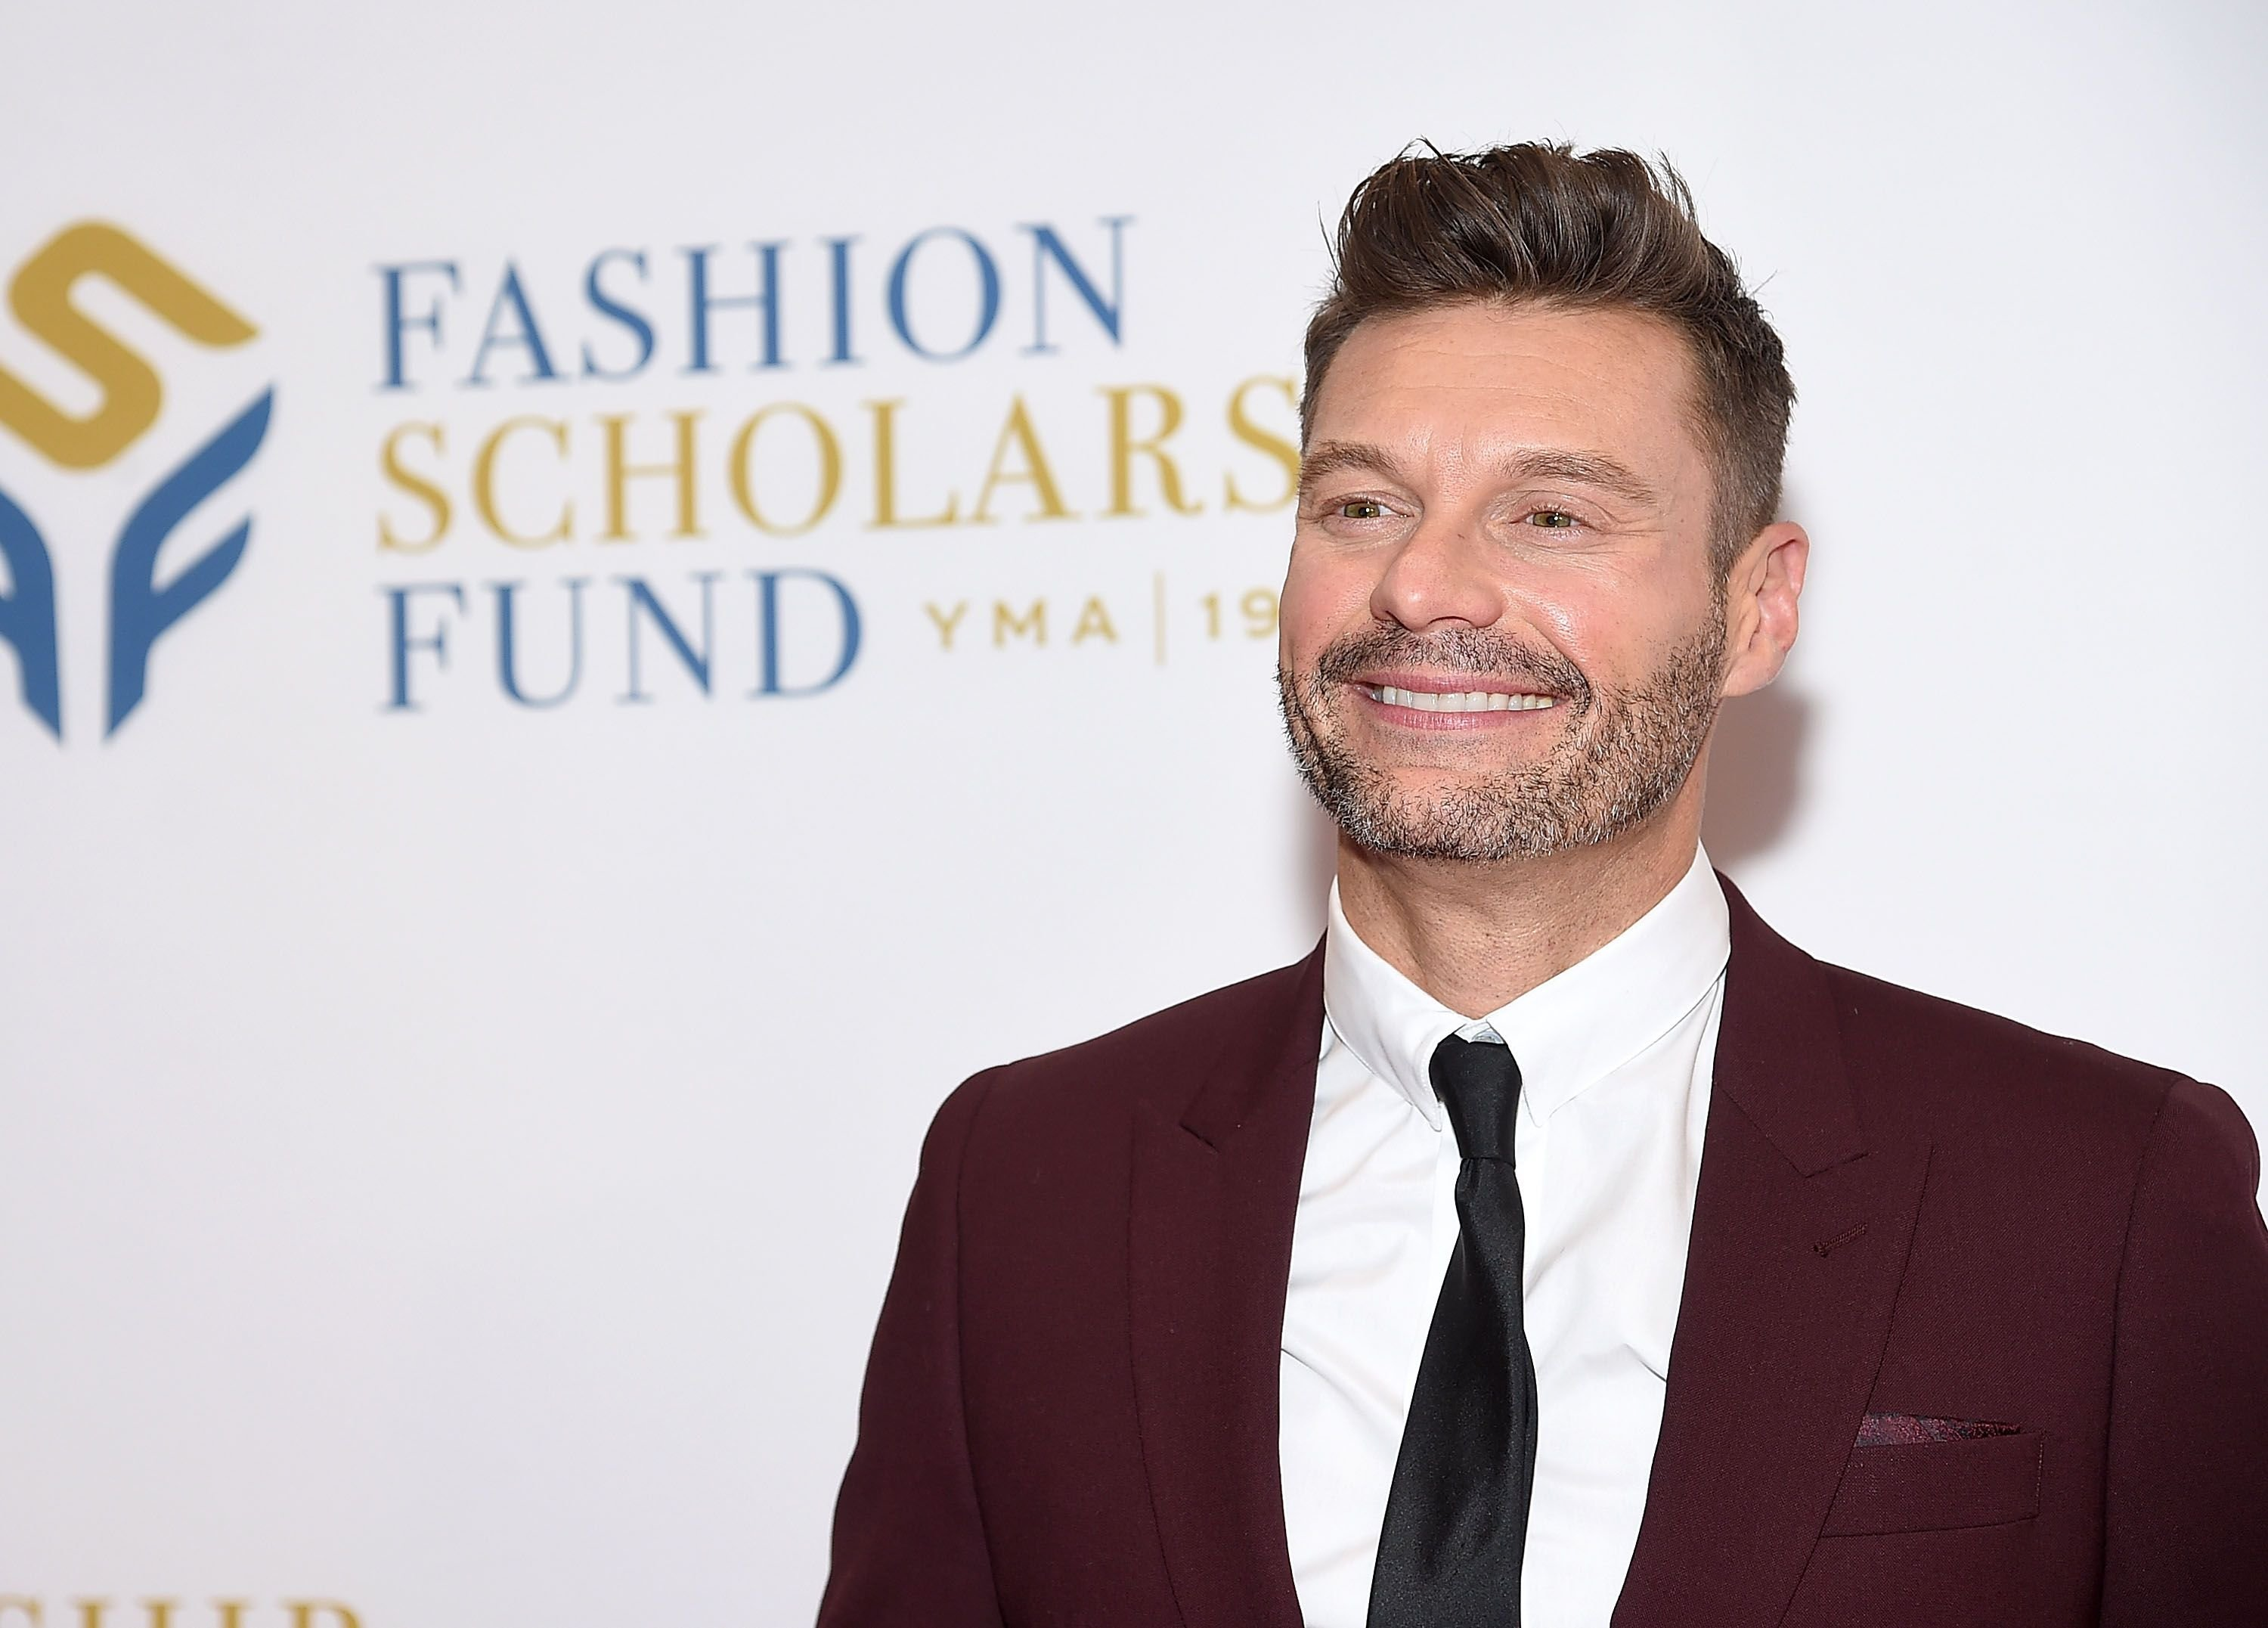 Ryan Seacrest at the 2019 Fashion Scholarship Fund Awards Gala on January 10 in New York. | Source: Getty Images